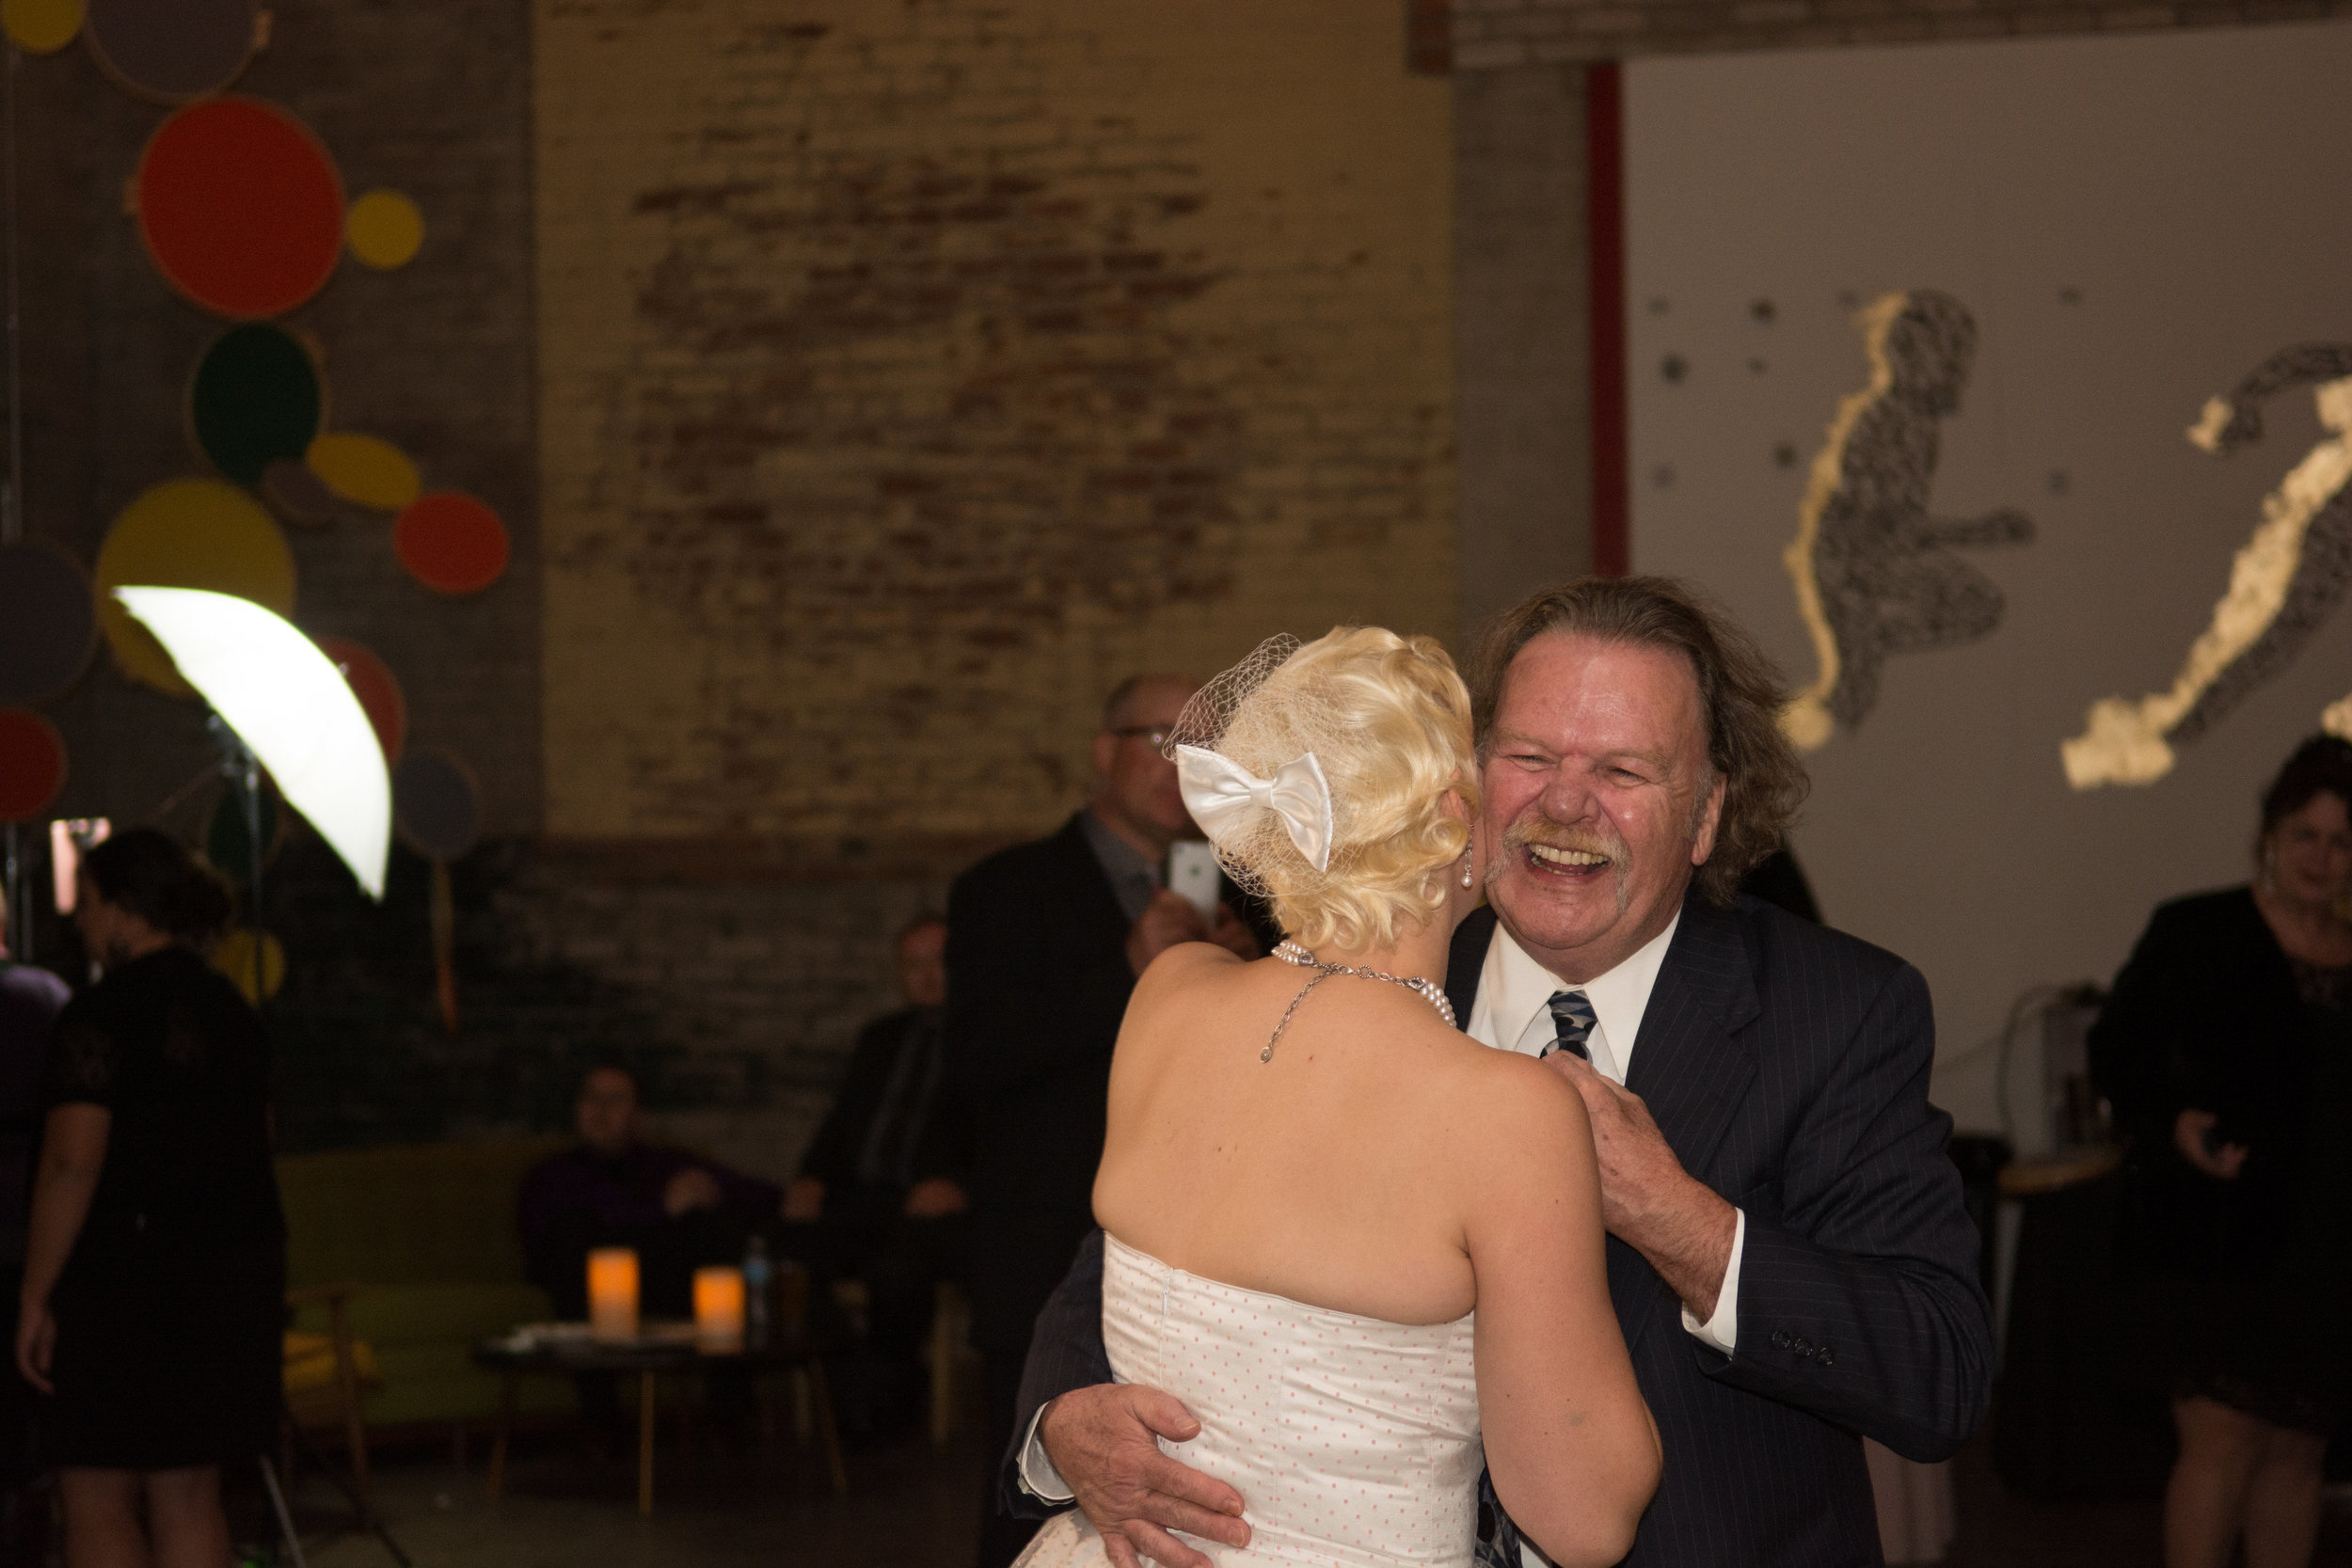 amanda+tom_wedding (541 of 592).jpg